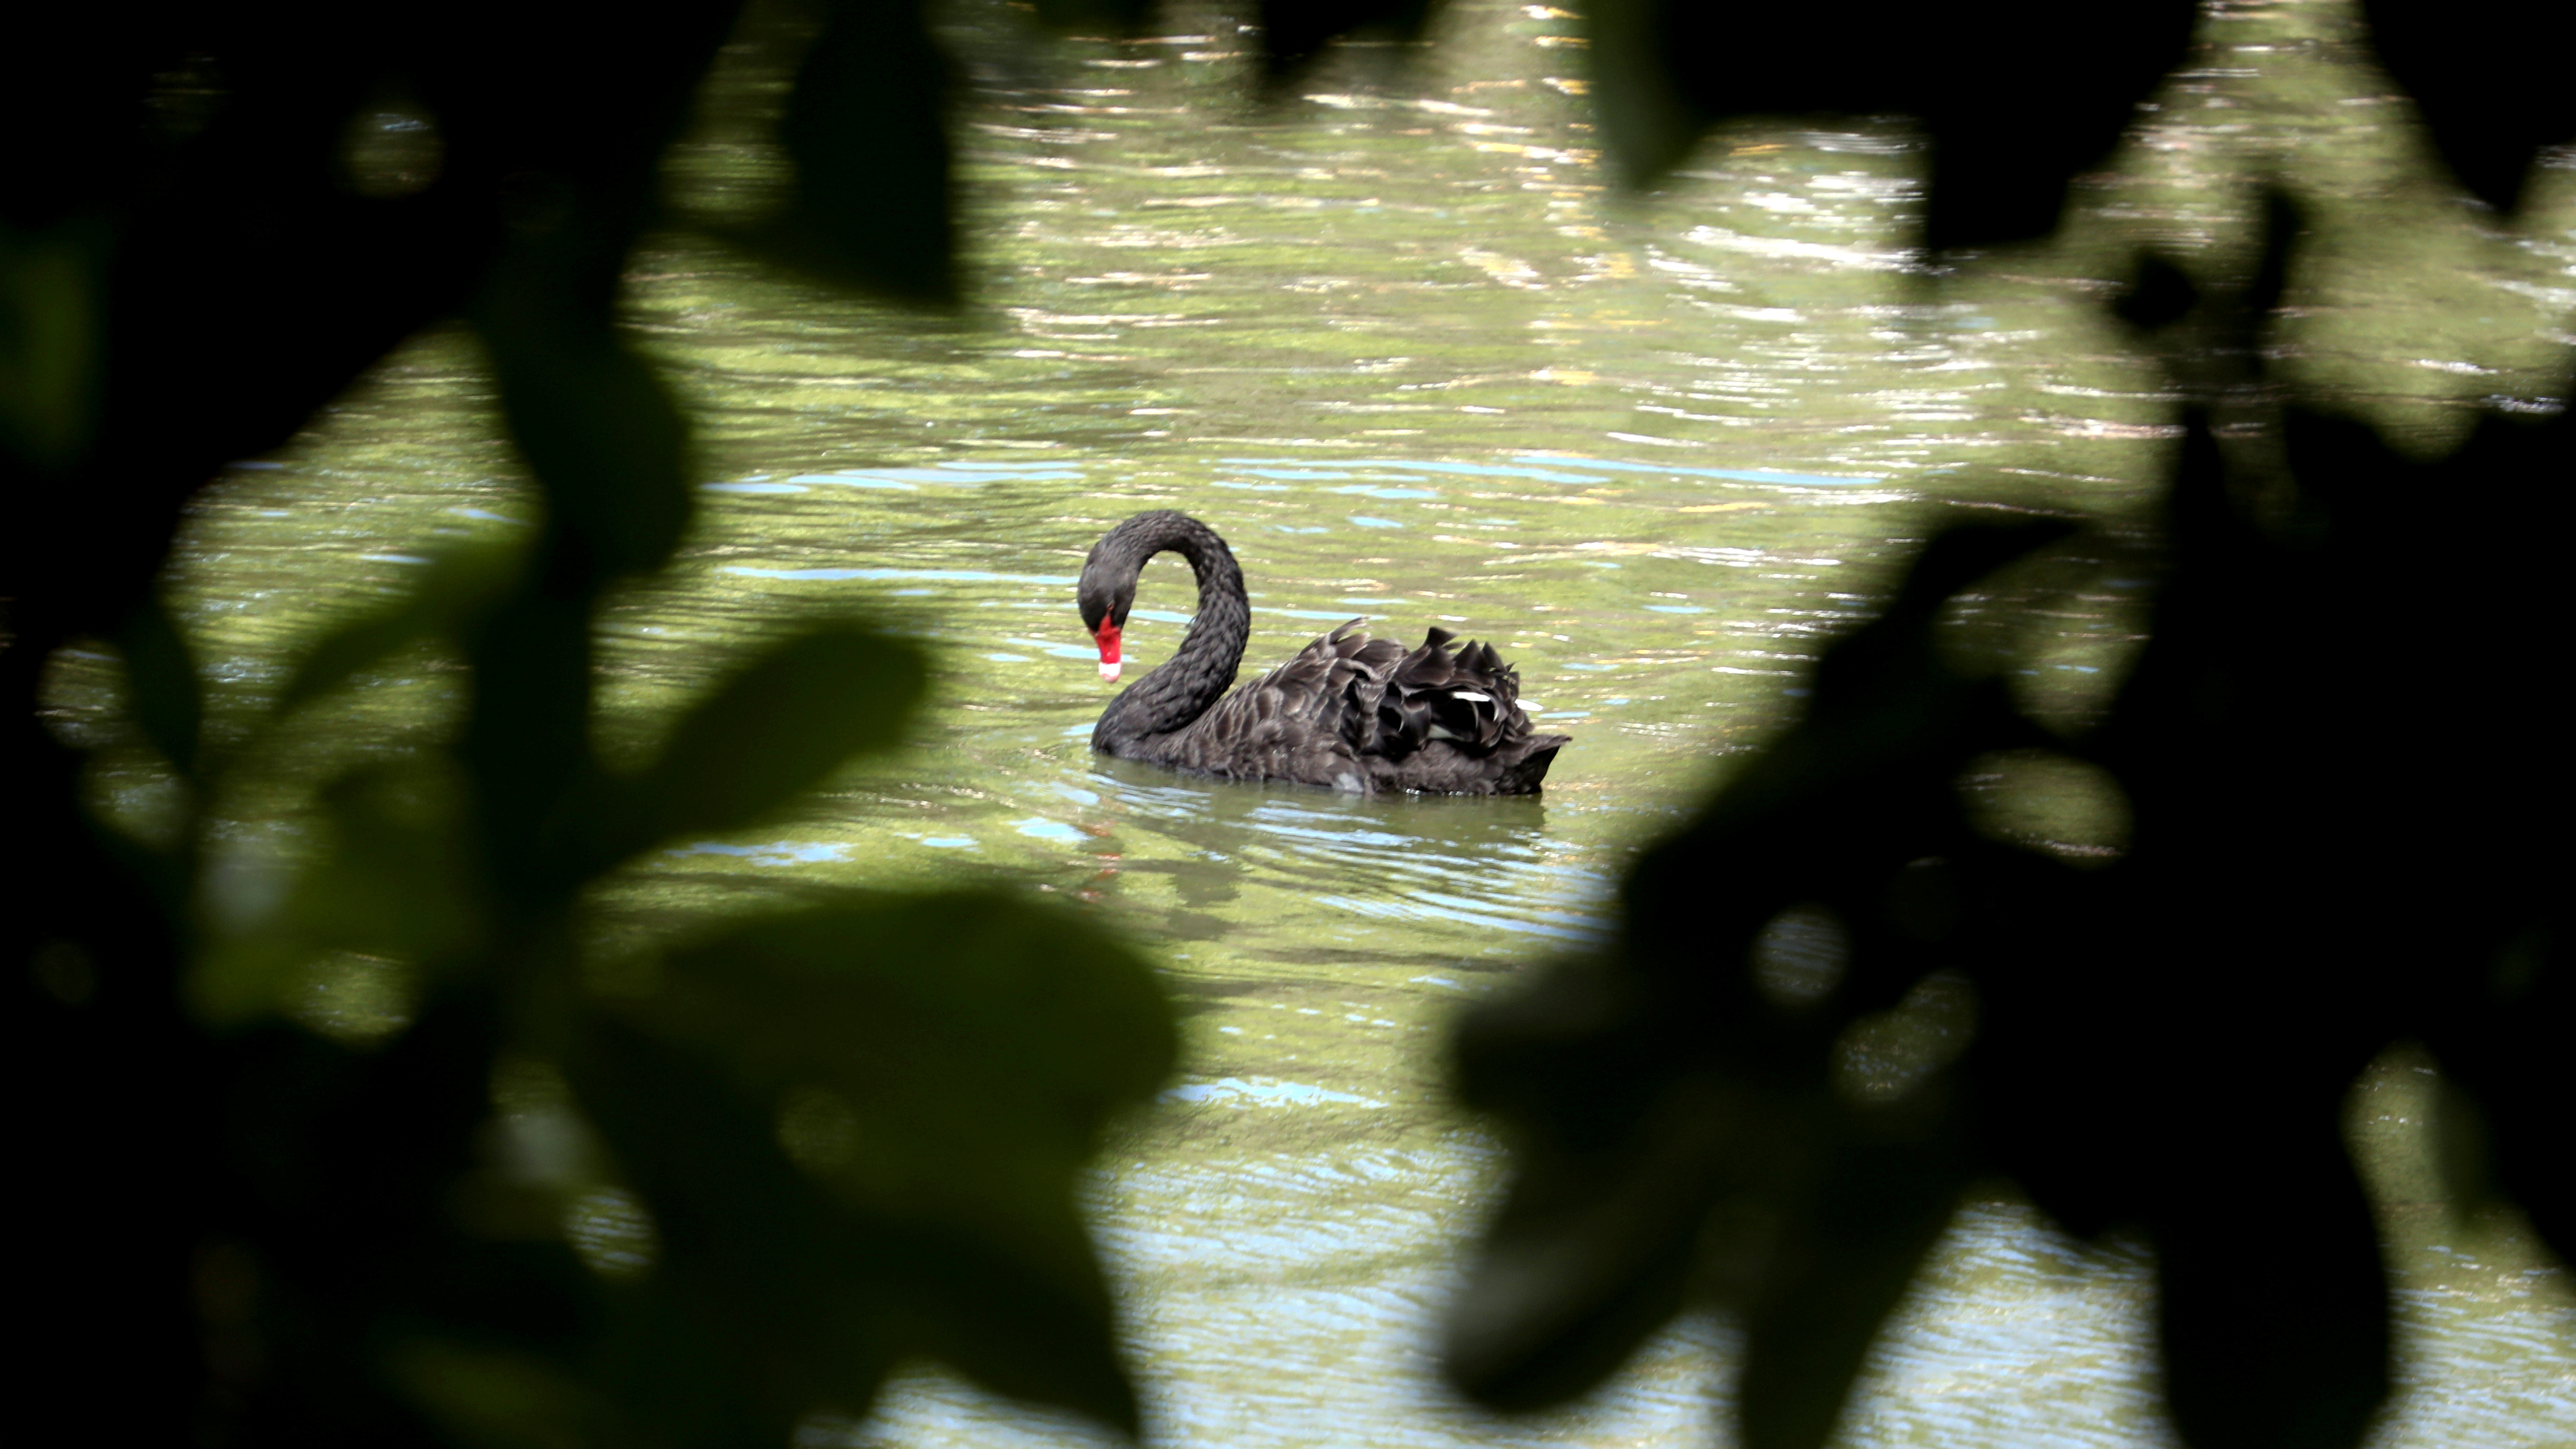 A black swan swims in a lake inside the Retiro Park in Madrid